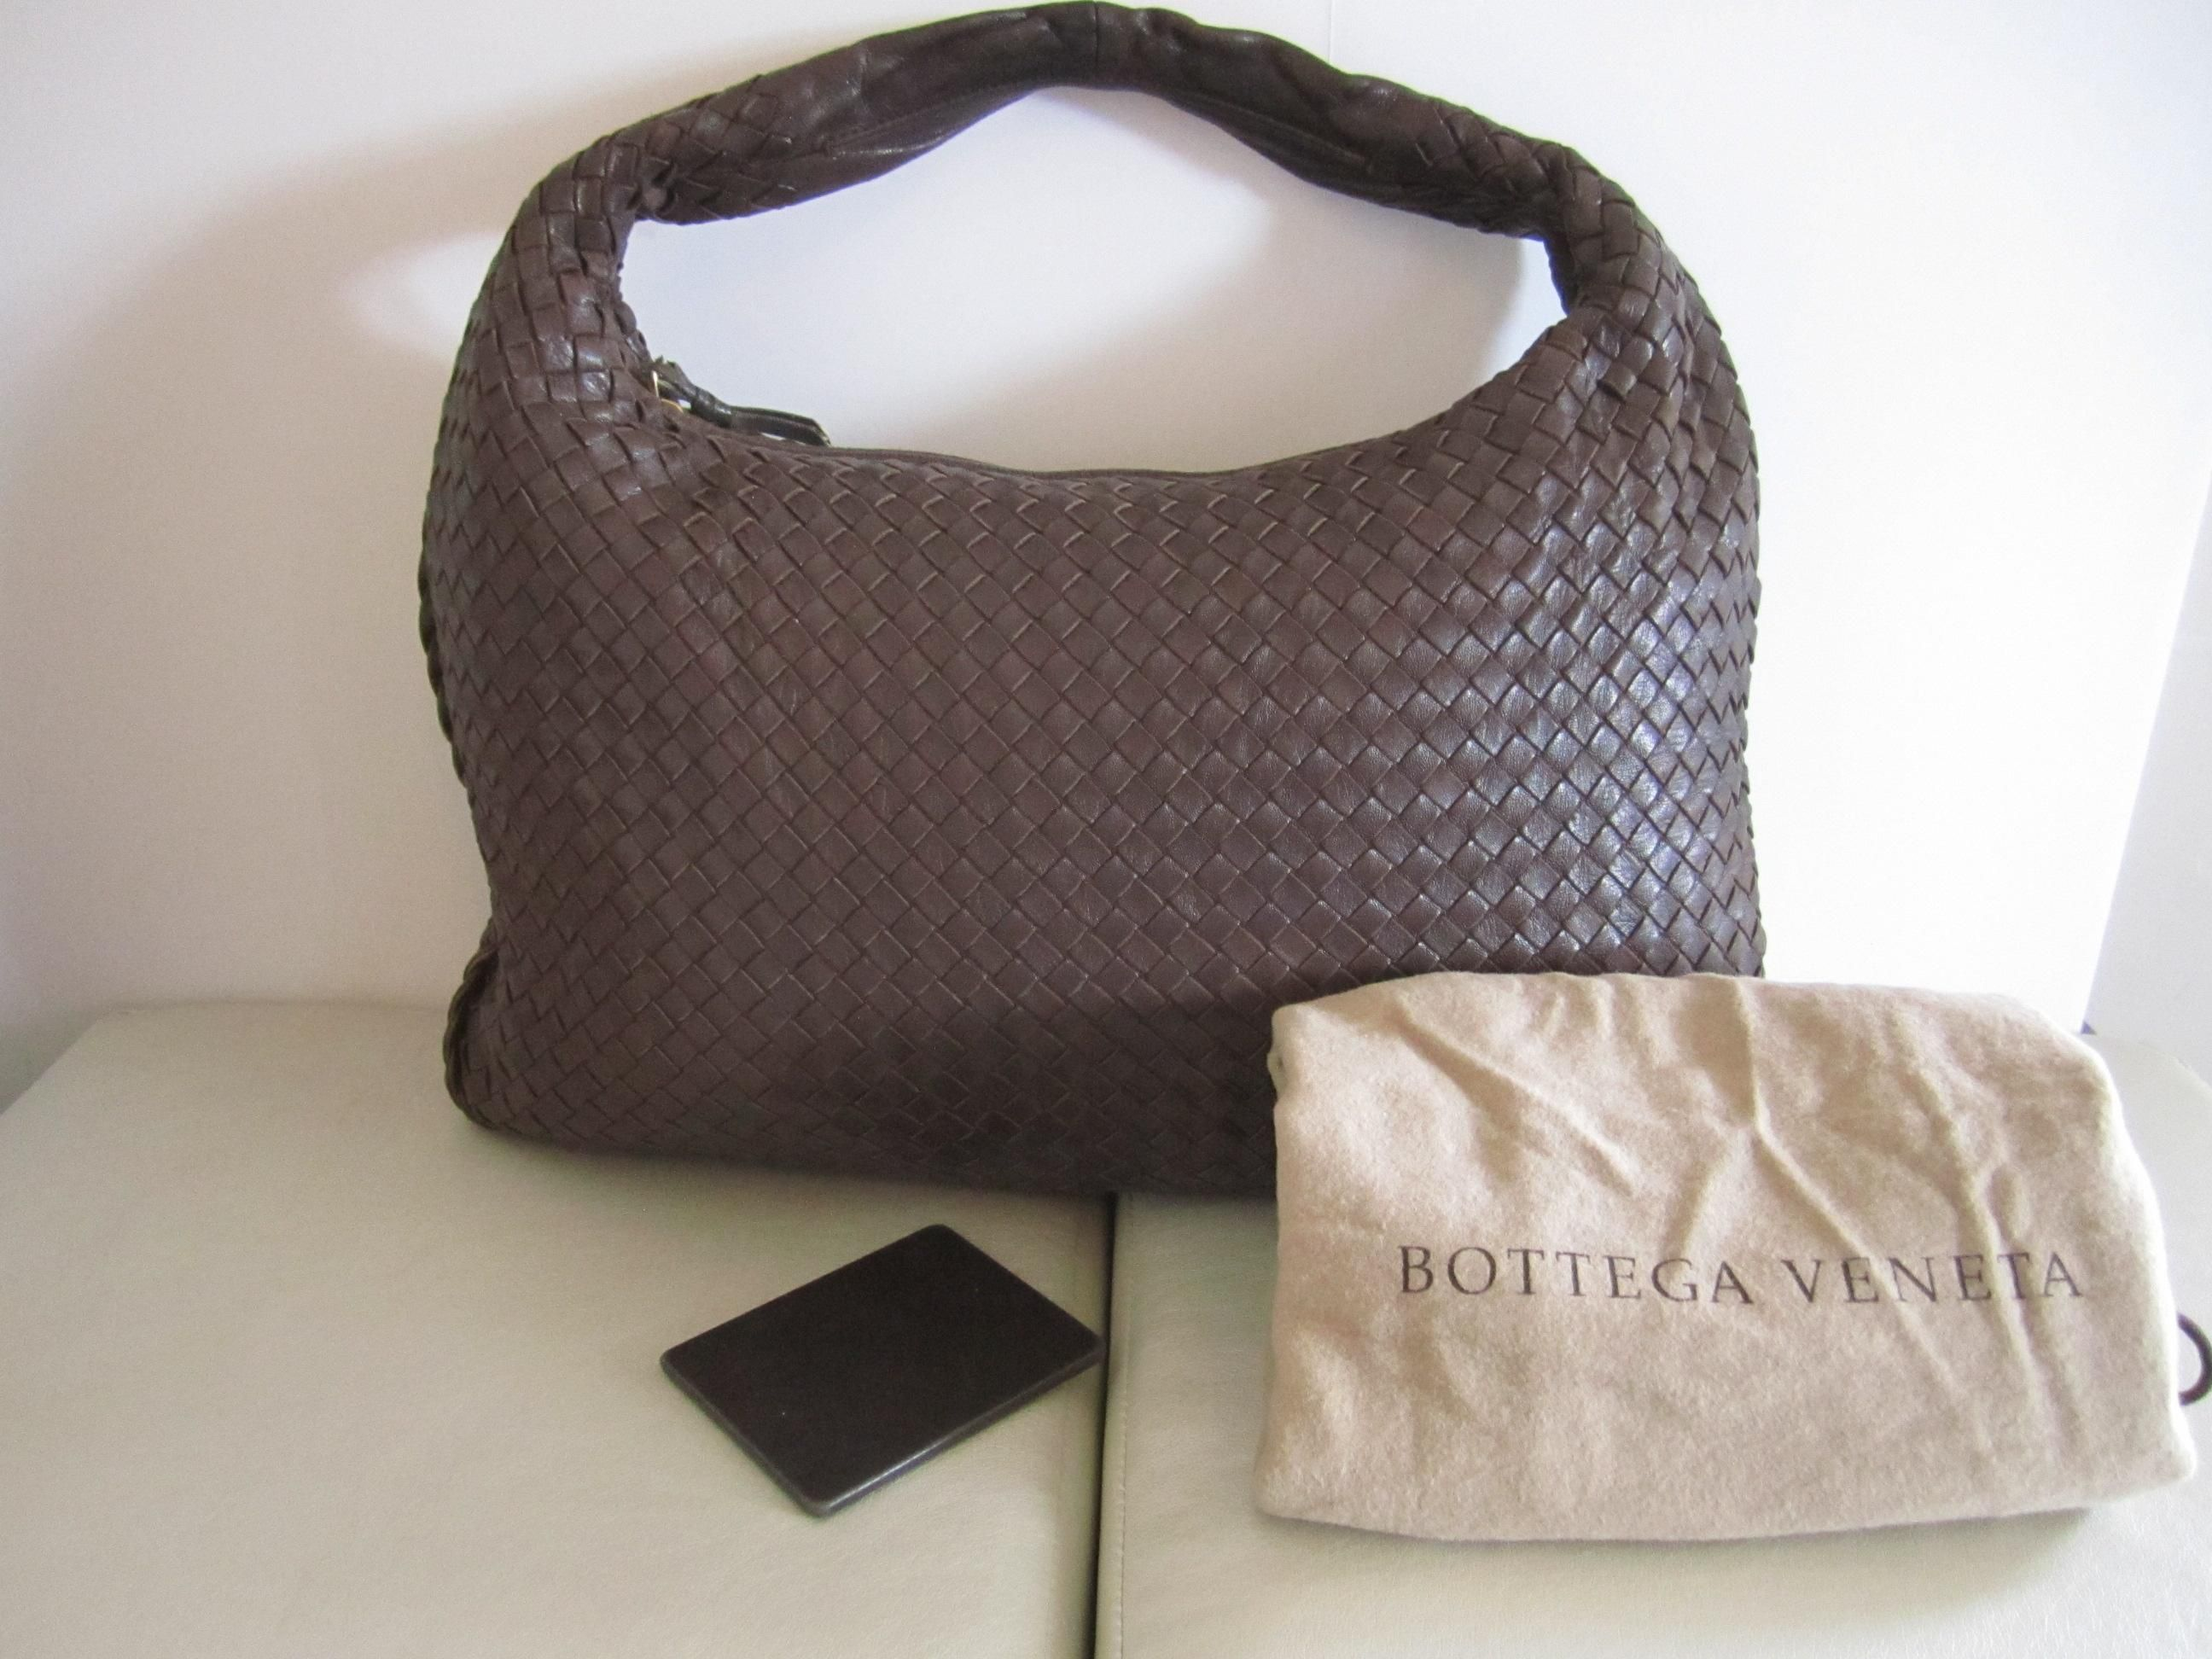 93b468d16149 Bottega Veneta Intrecciato Leather Hobo With Mirror Shoulder Bag. Get one  of the hottest styles of the season! The Bottega Veneta Intrecciato Leather  Hobo ...